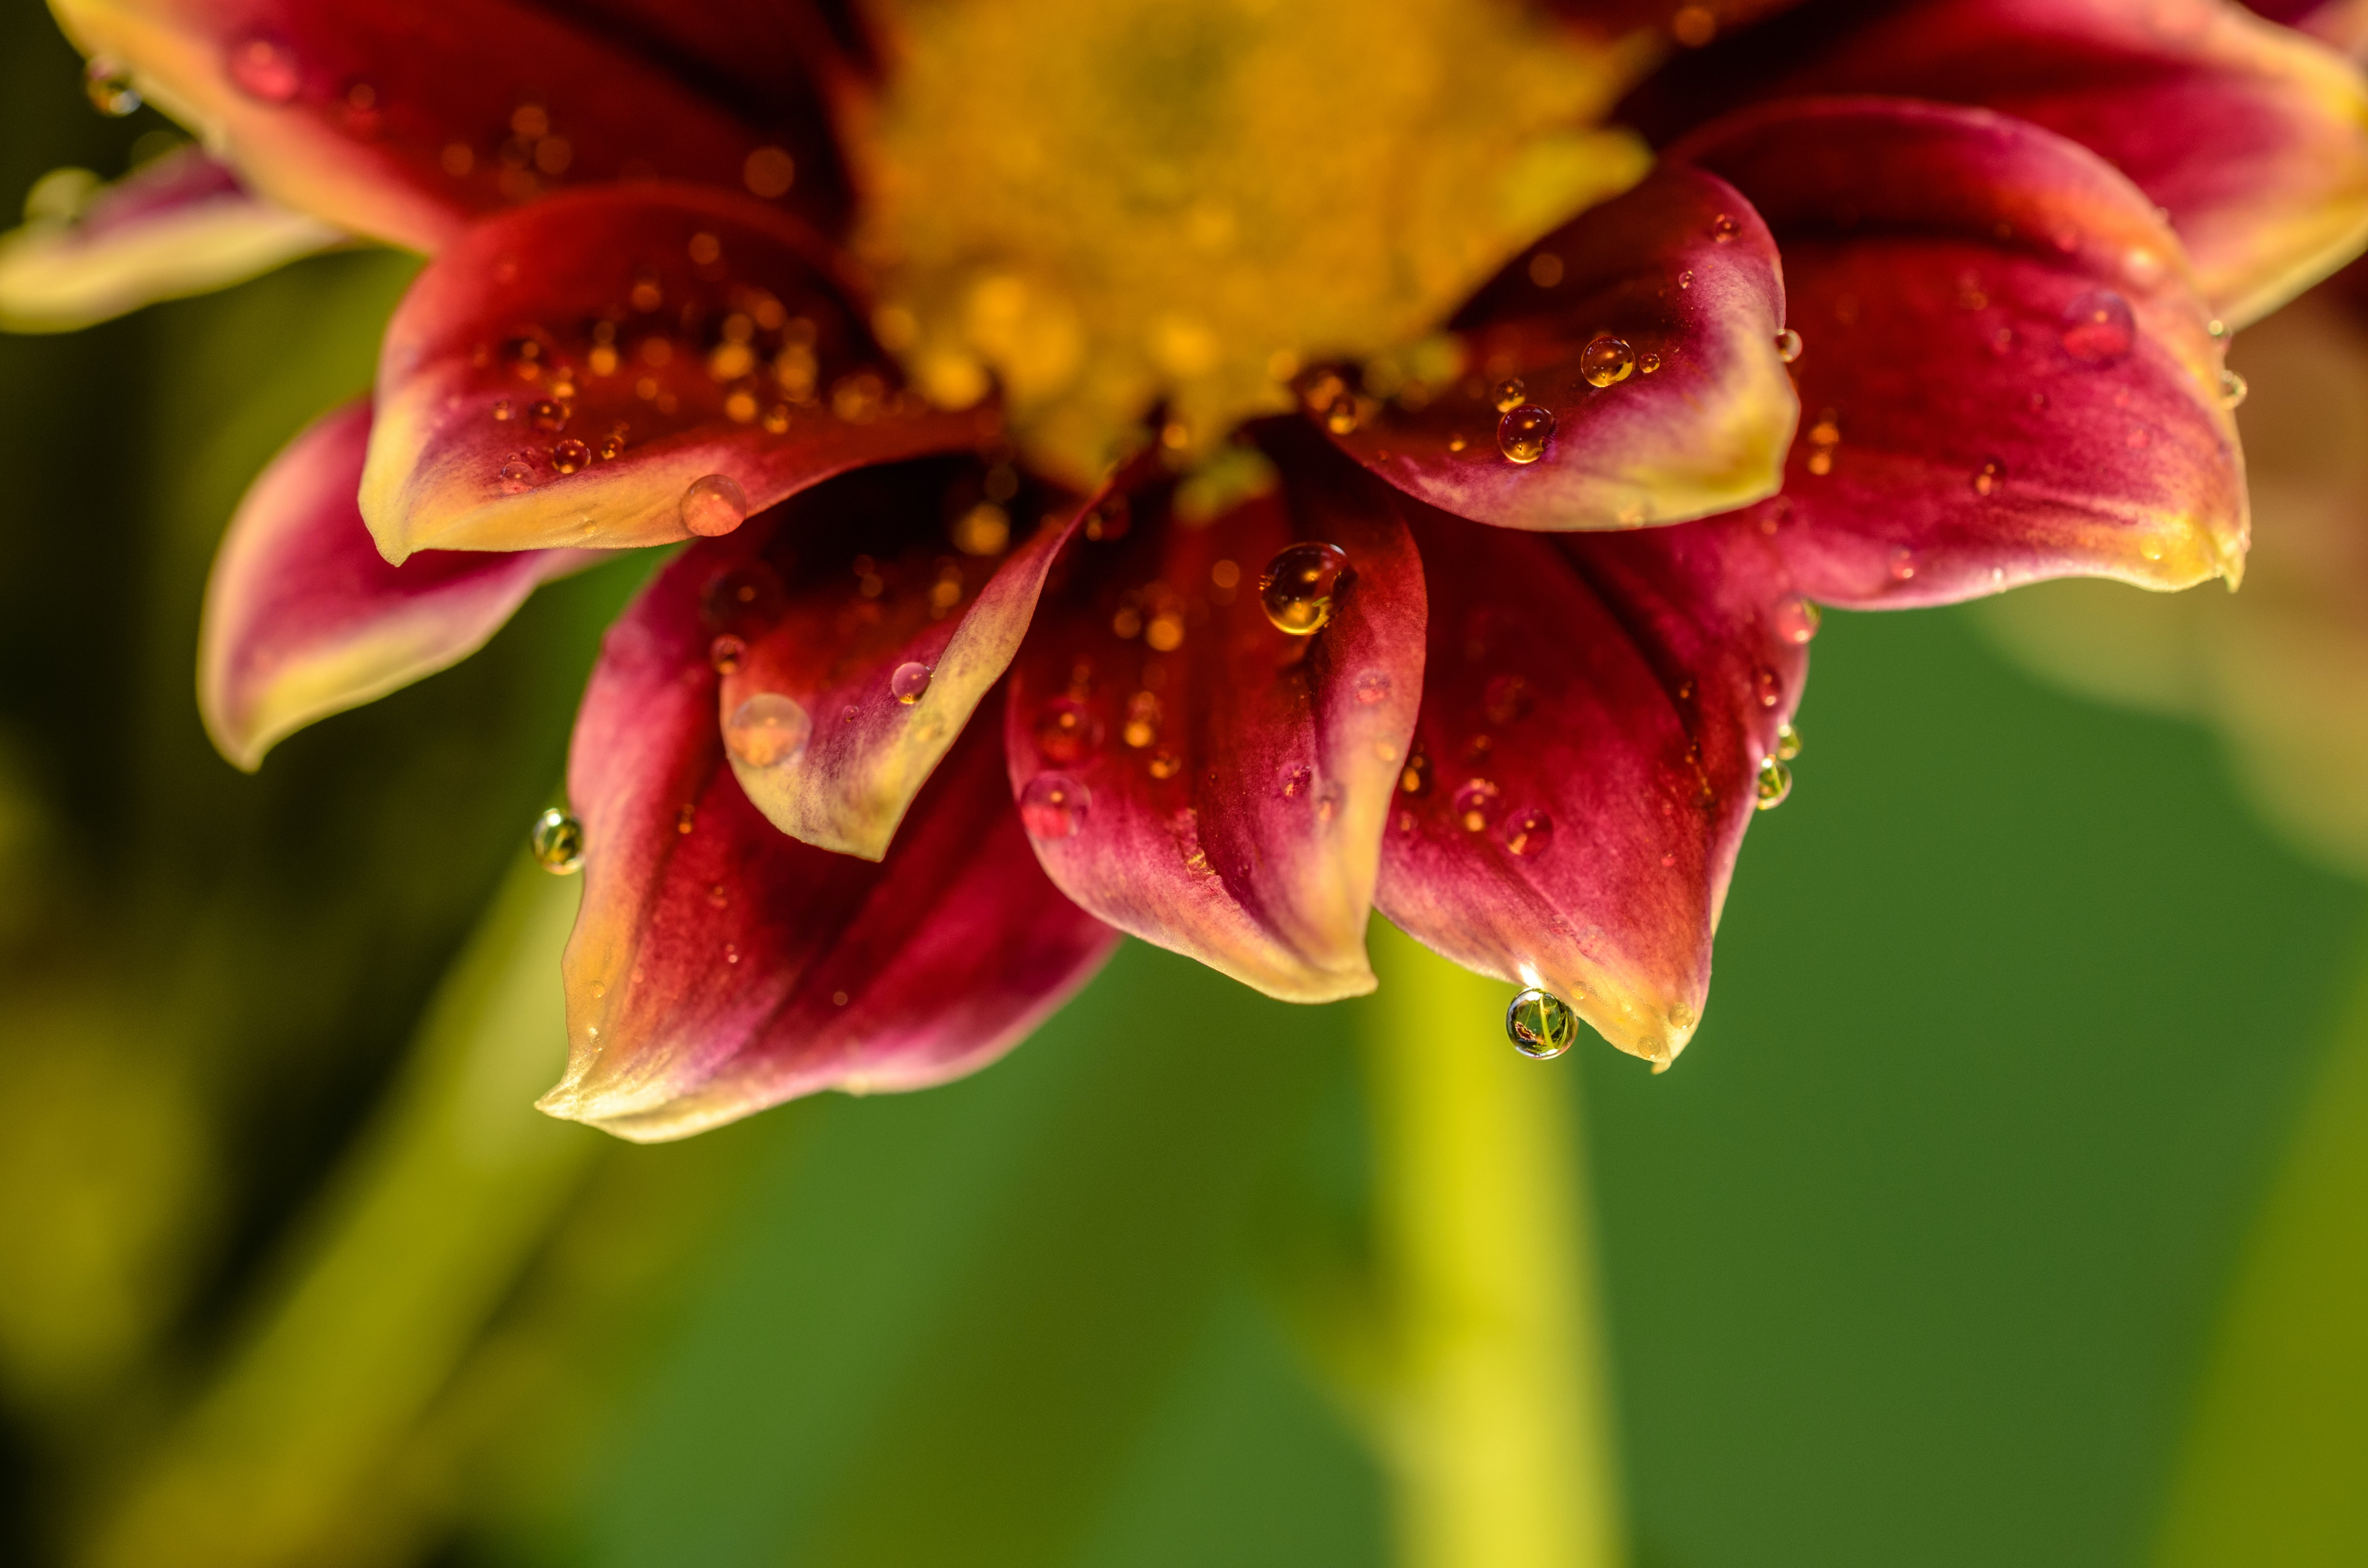 yellow and red flower petals in macro shot photography